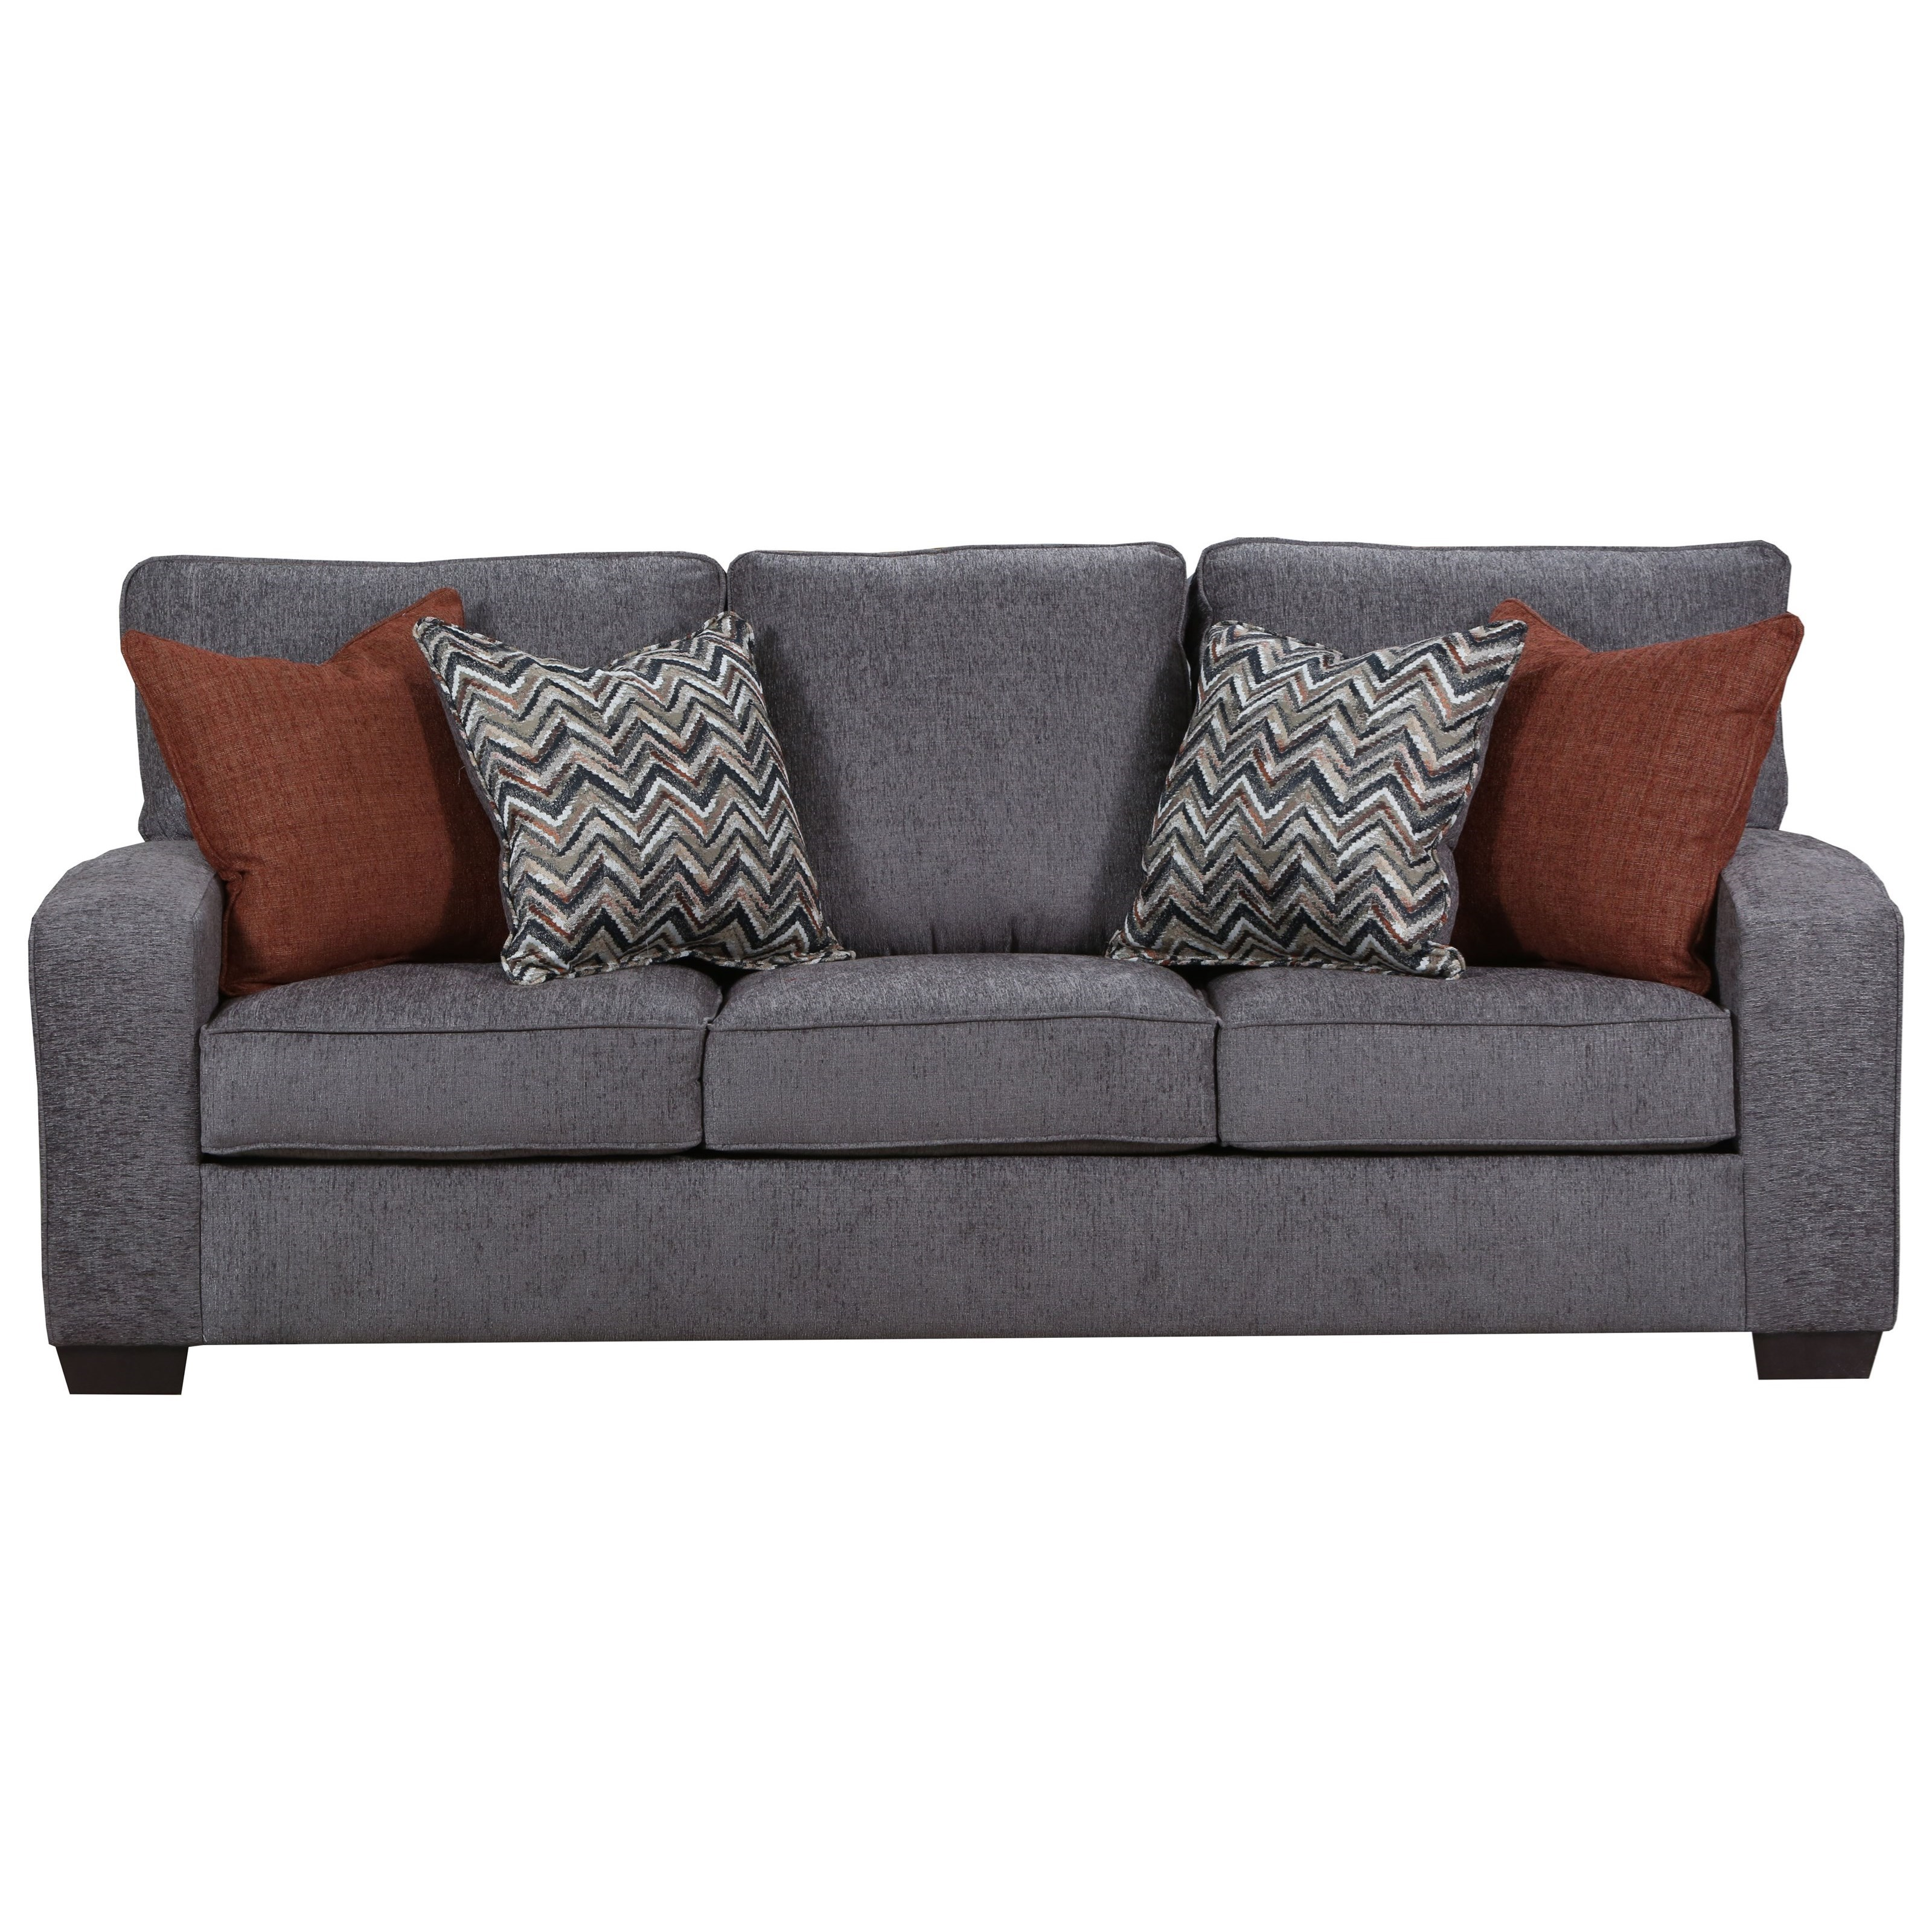 United Furniture Industries 7077 Sofa - Item Number: 7077Sofa-Endurance Shadow